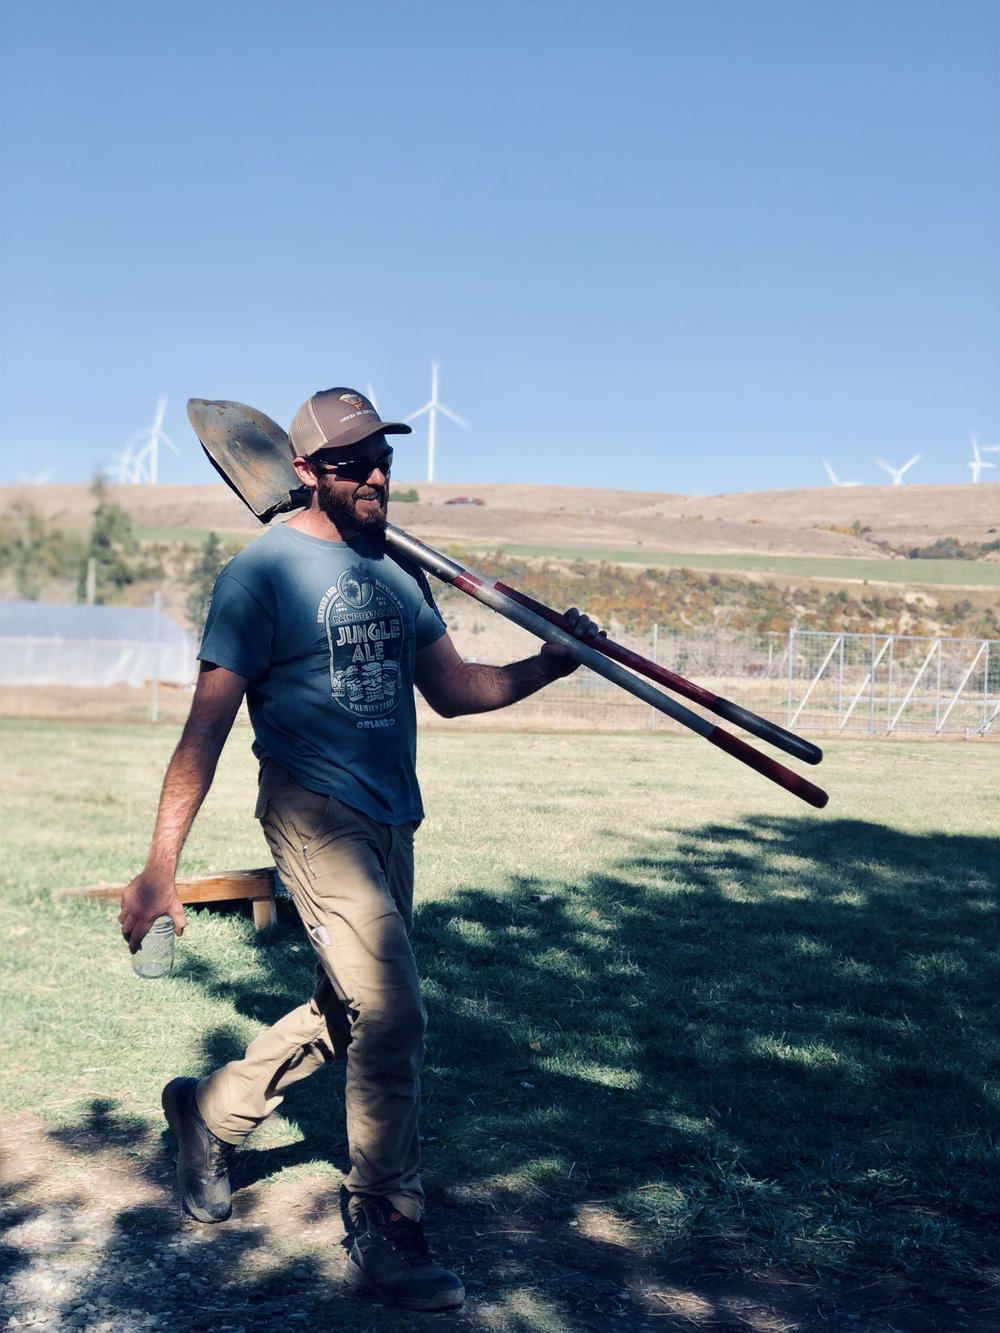 Sean carrying some shovels on a glorious October day at Spoon Full.